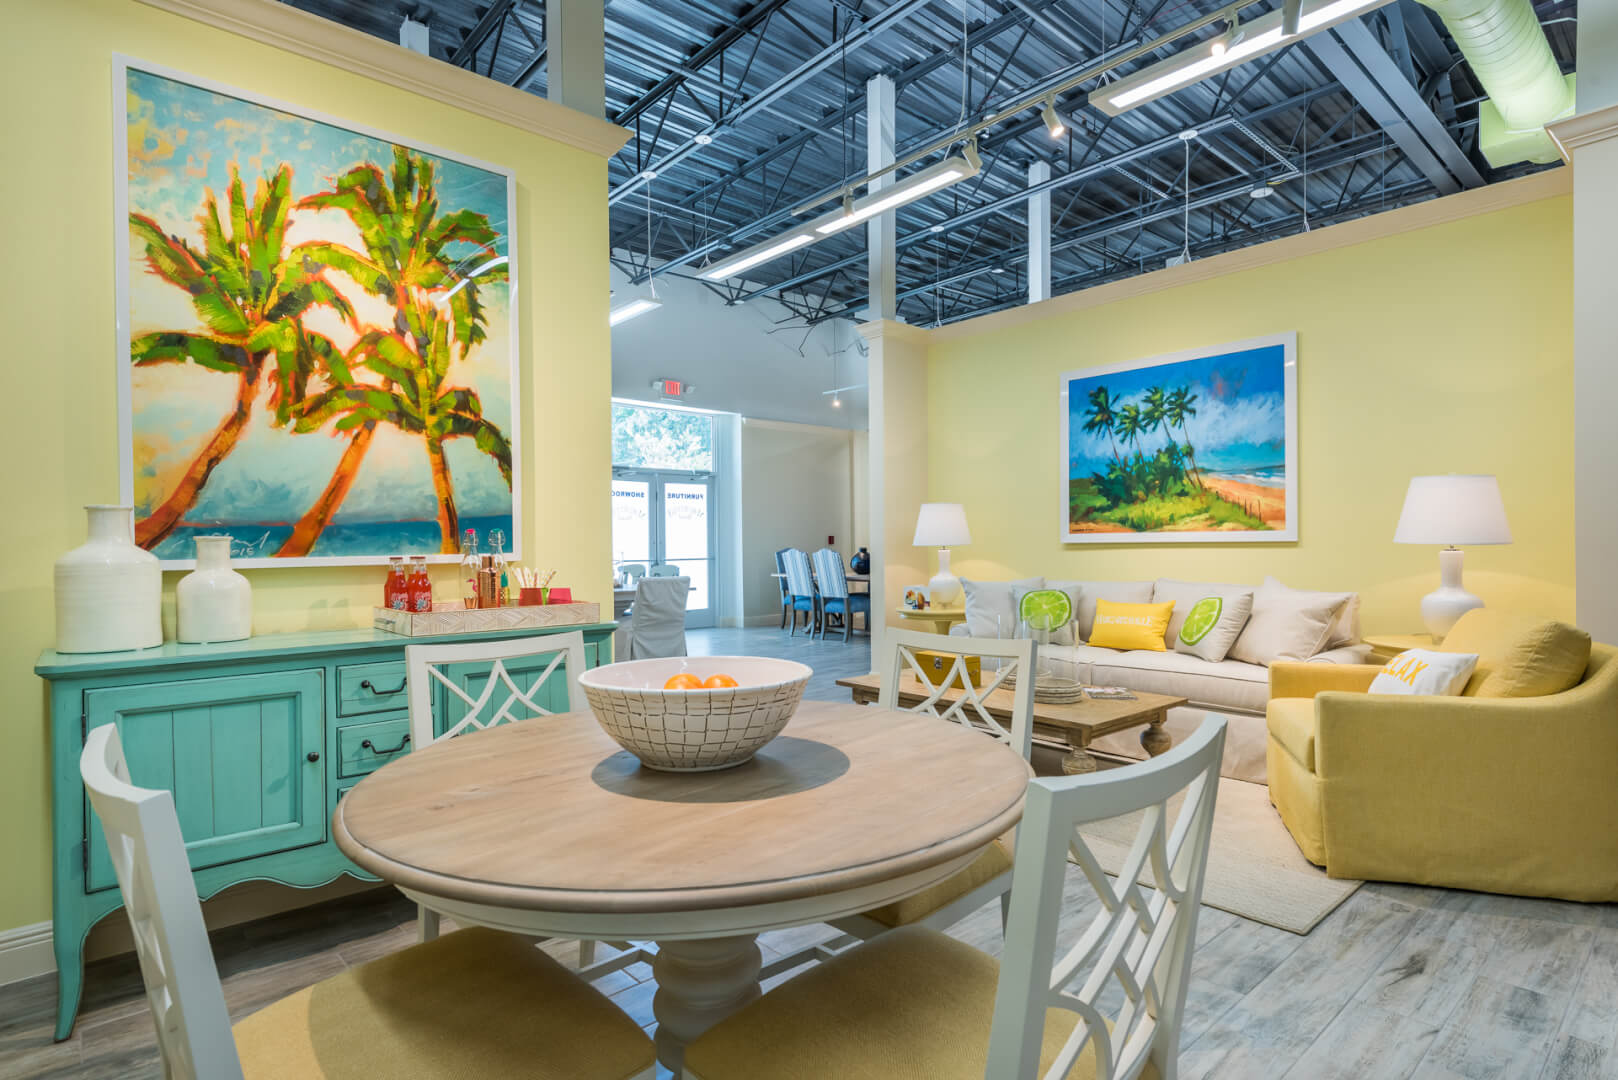 Margaritaville Resort Orlando Introduces Chic Ethan Allen Furniture Collections For Vacation